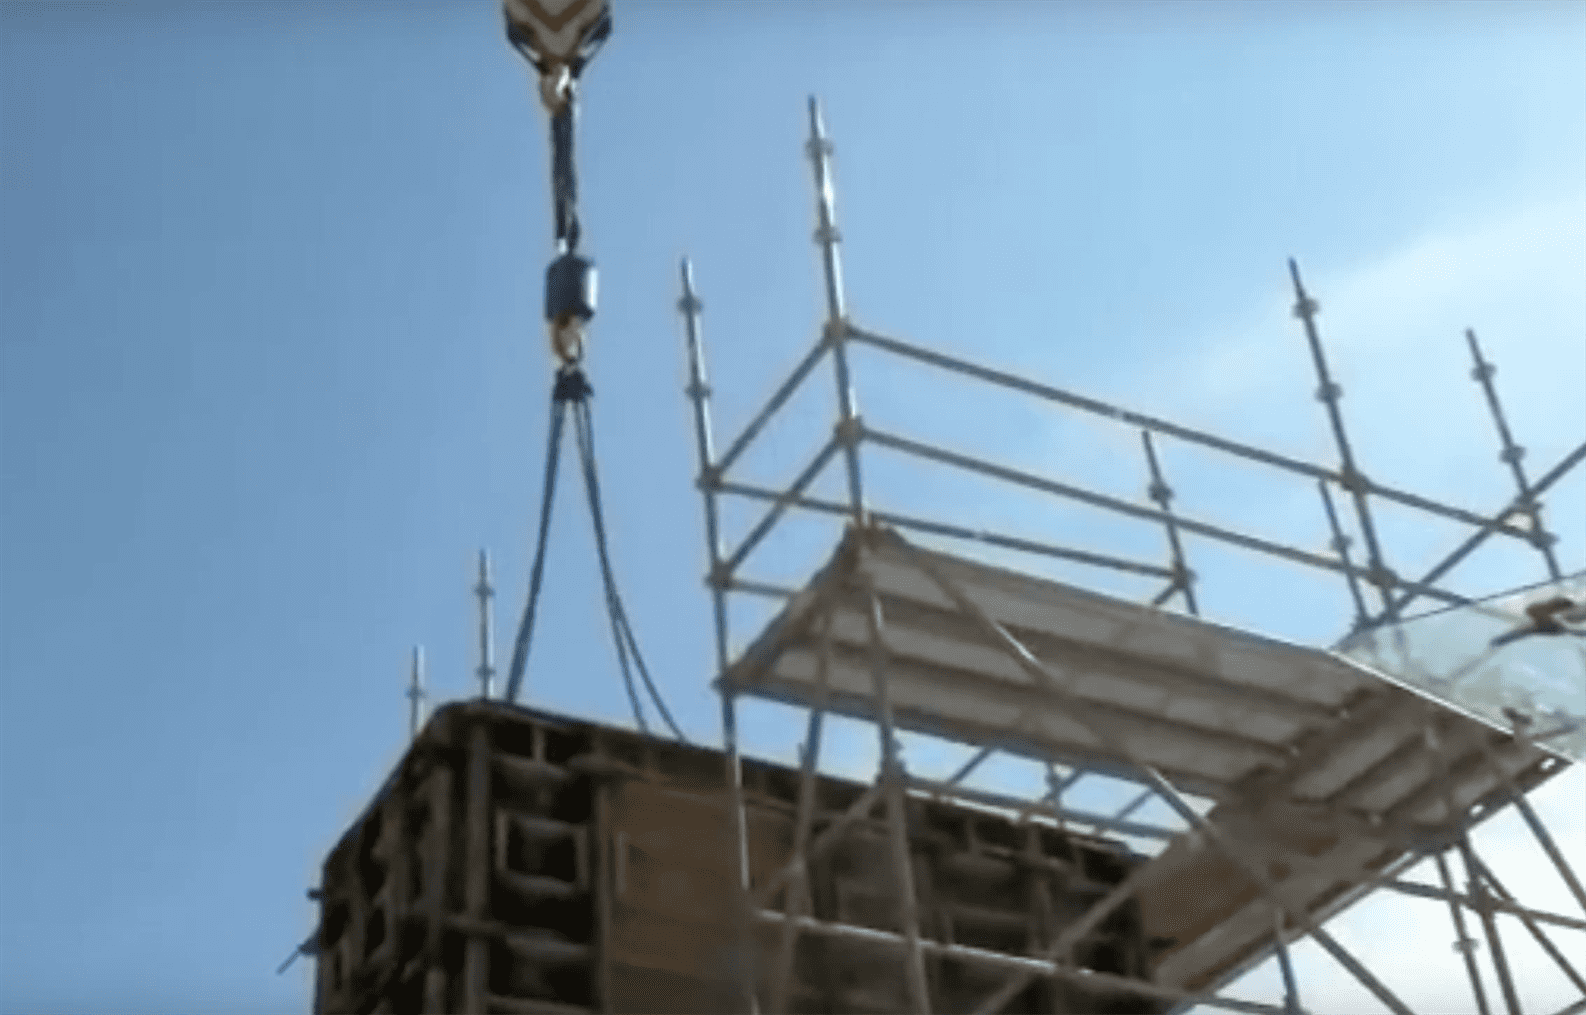 Captura de pantalla 2016 05 06 a les 13.09.18 - Construction Industry